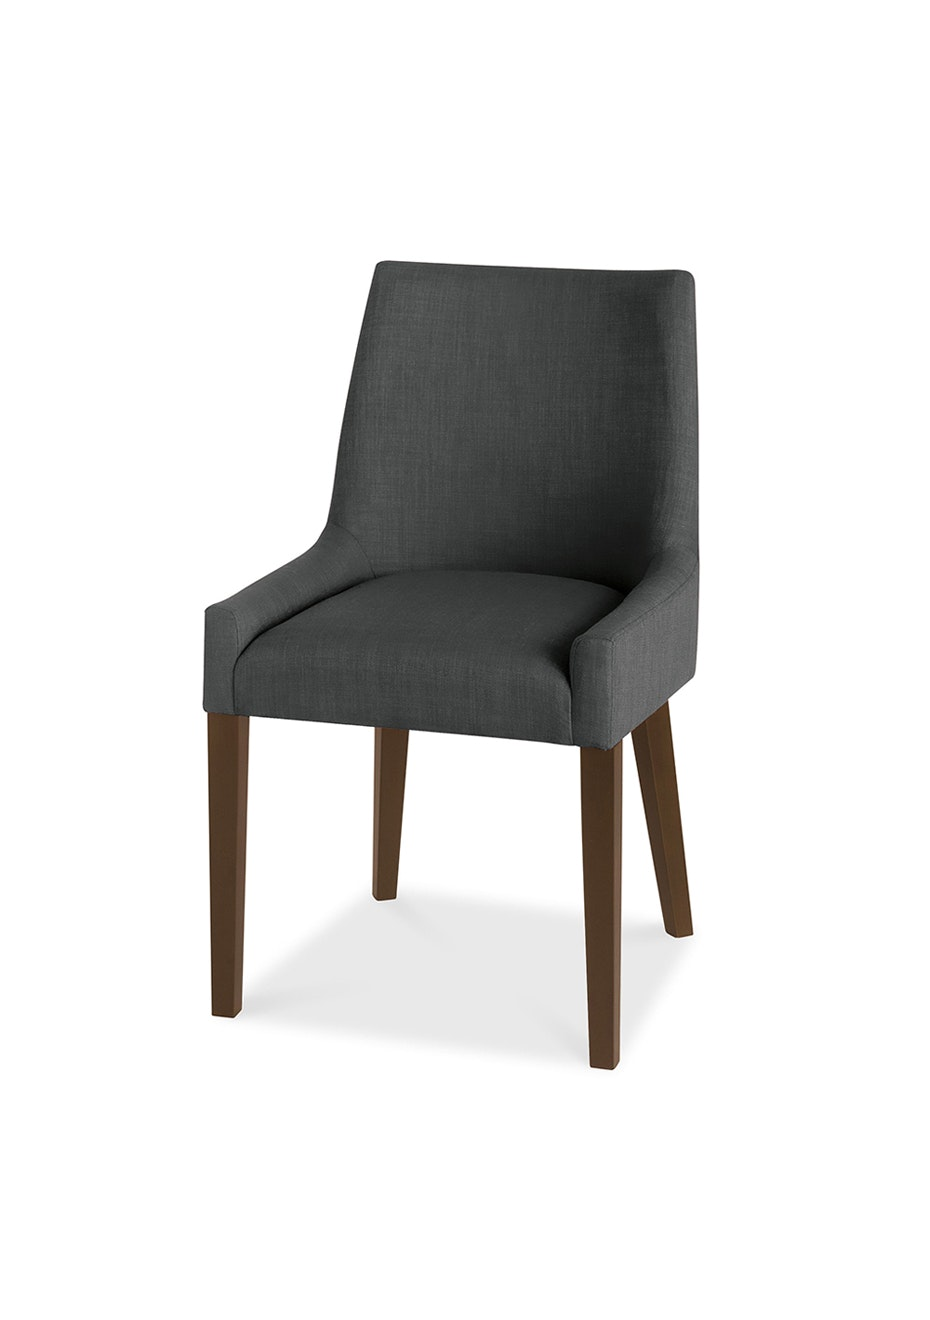 Furniture By Design - Ella Scoop Back Chair- Walnut and Charcoal